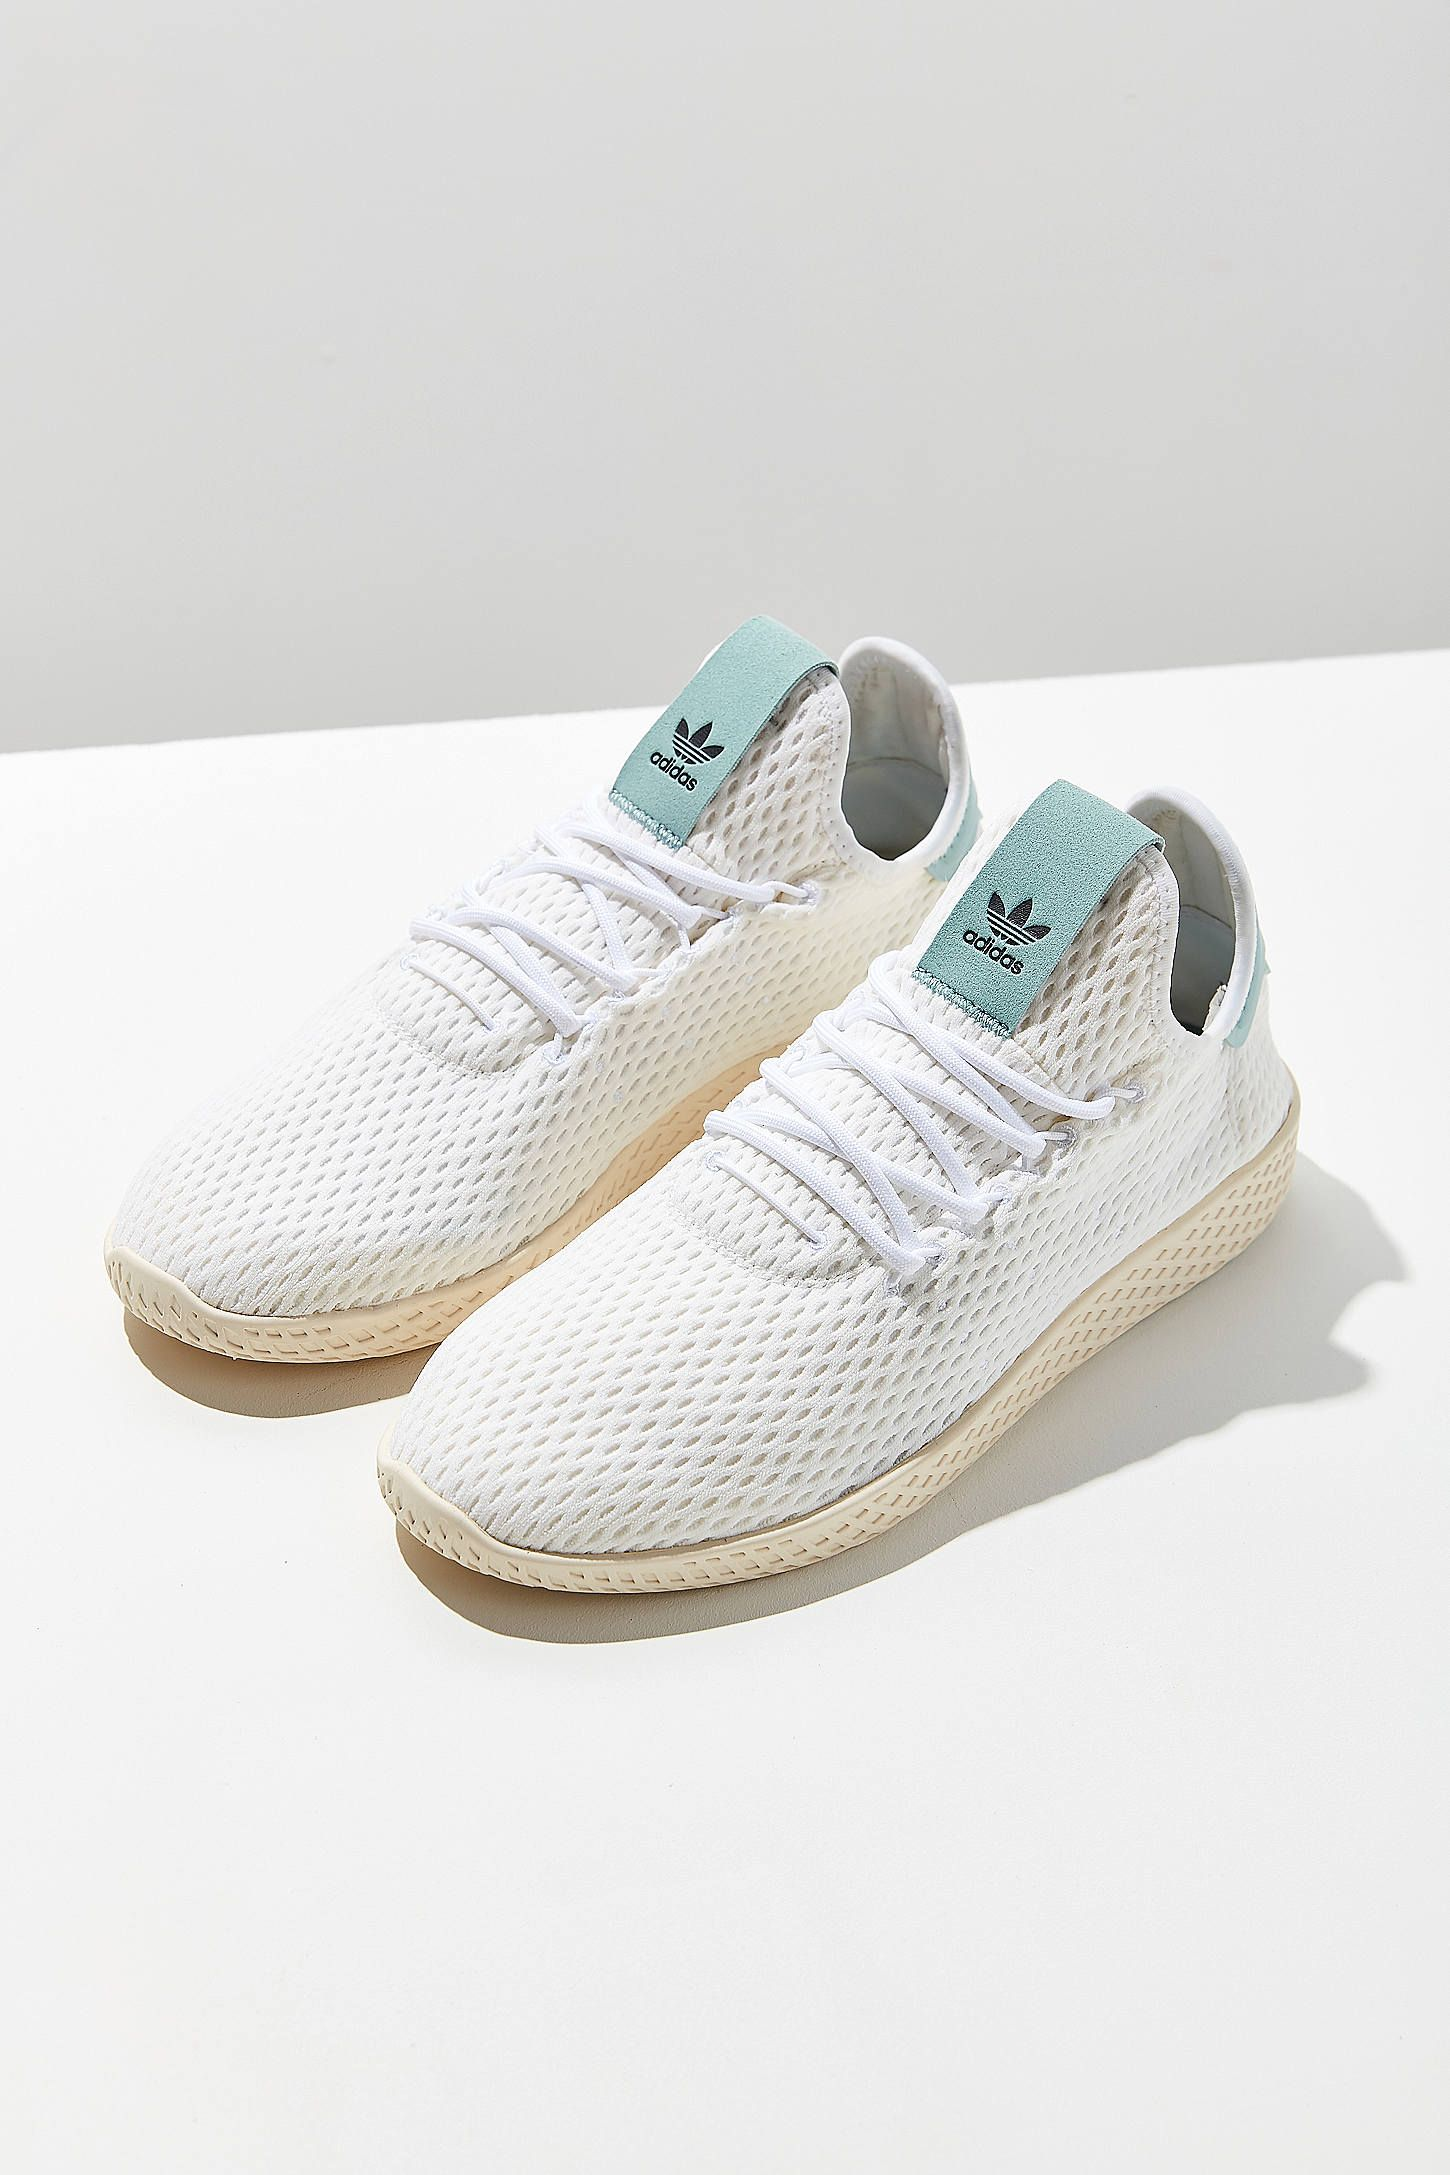 bf28ed4cf Shop adidas Originals X Pharrell Williams Tennis Hu Sneaker at Urban  Outfitters today. We carry all the latest styles